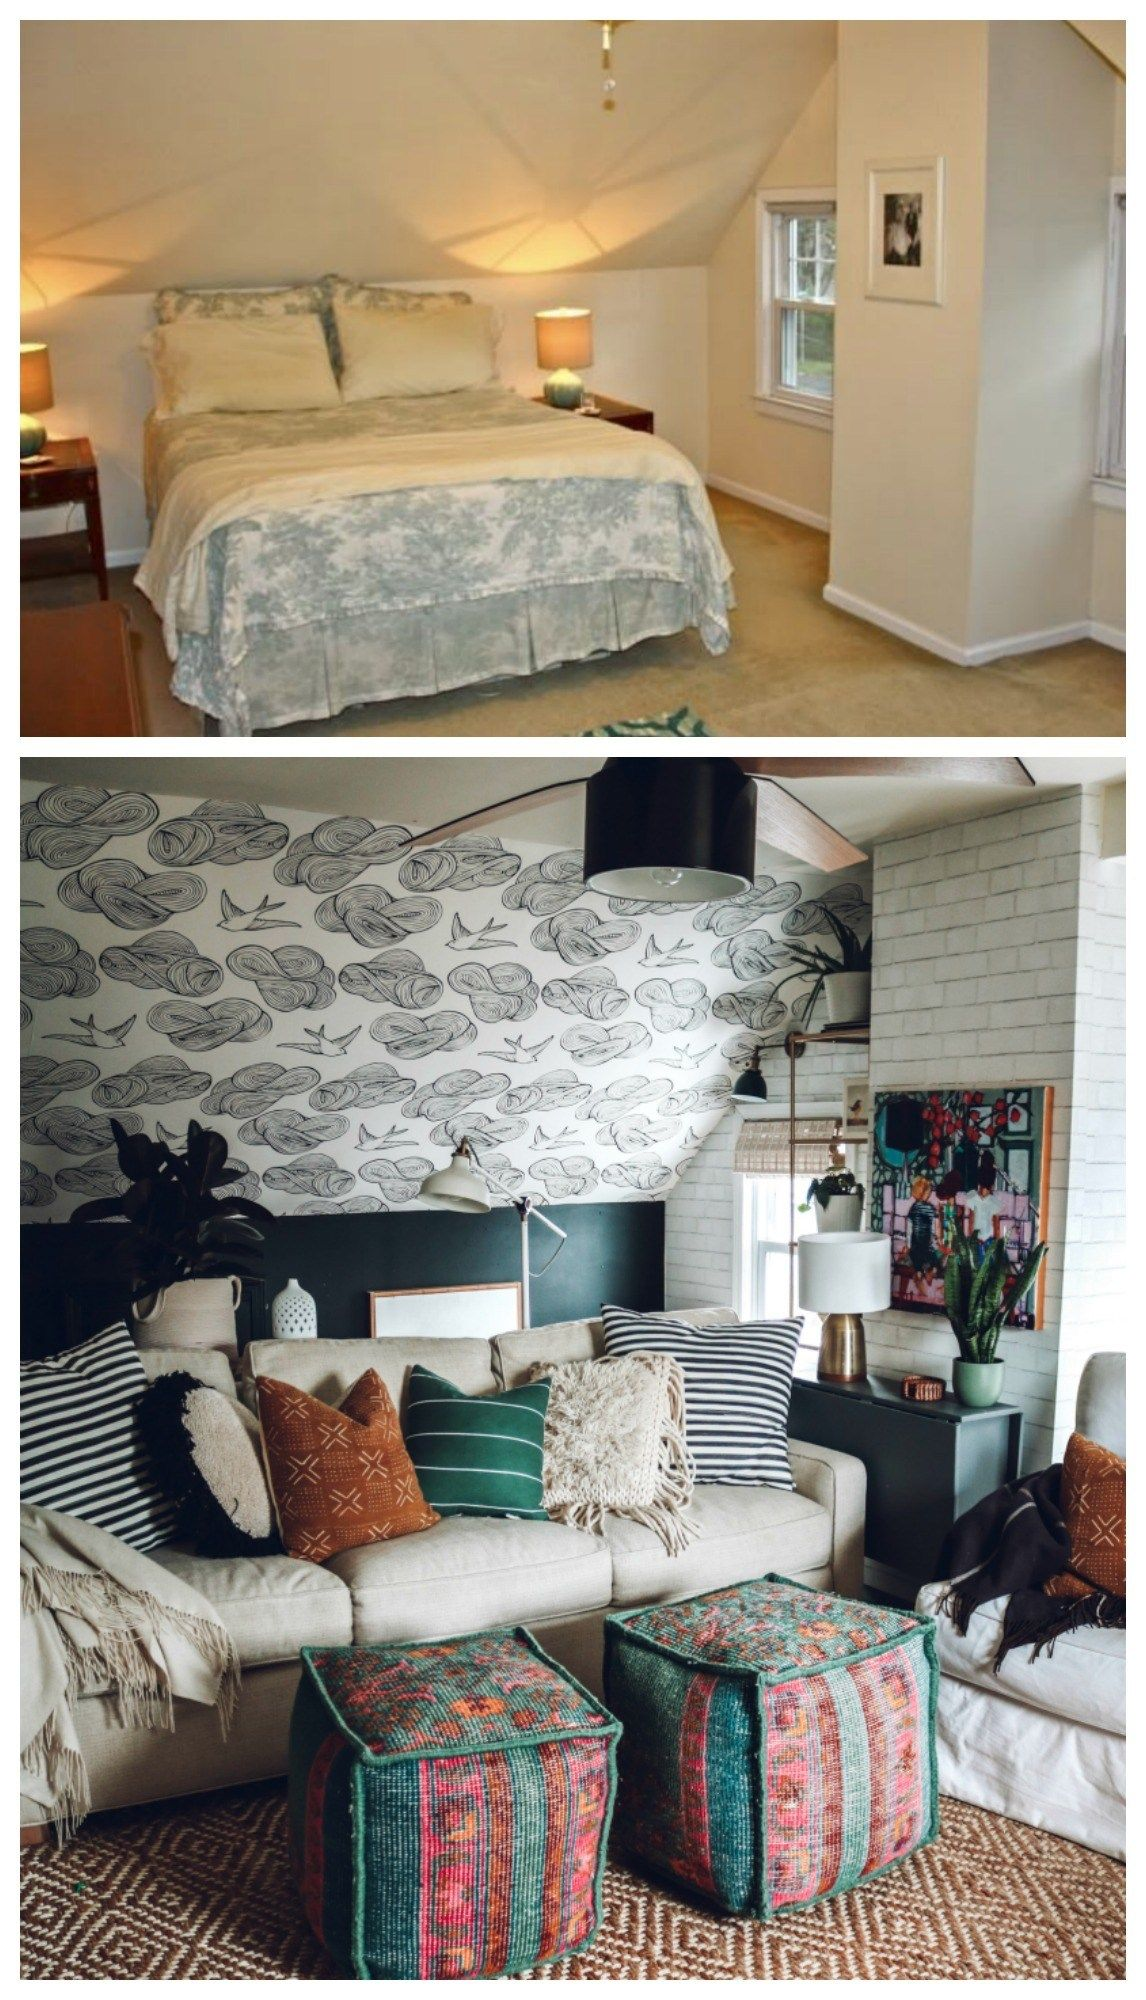 Complete Before And After S 1100 Sq Ft Cape Floor Plan And Future Nesting With Grace Furniture For Small Spaces Small Space Living Decor